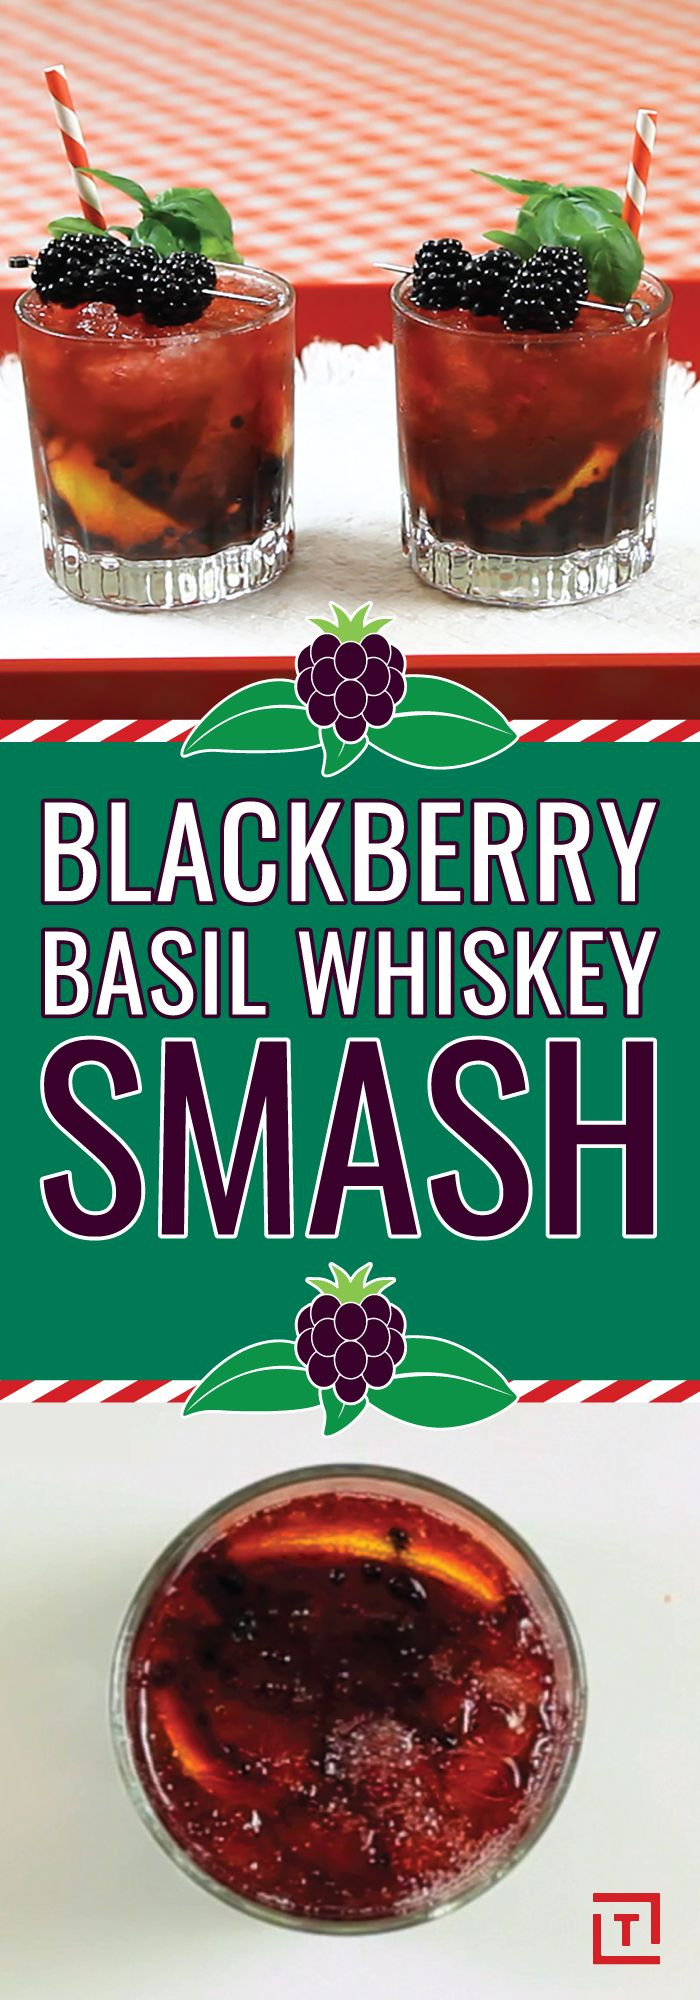 Crush it with this blackberry basil whiskey smash that features fresh muddled blackberries and lemons, a savory basil reduction, and a healthy amount of bourbon. Garnish it with a skewer of blackberries and some basil leaves for an easy-to-make refreshing summer cocktail.